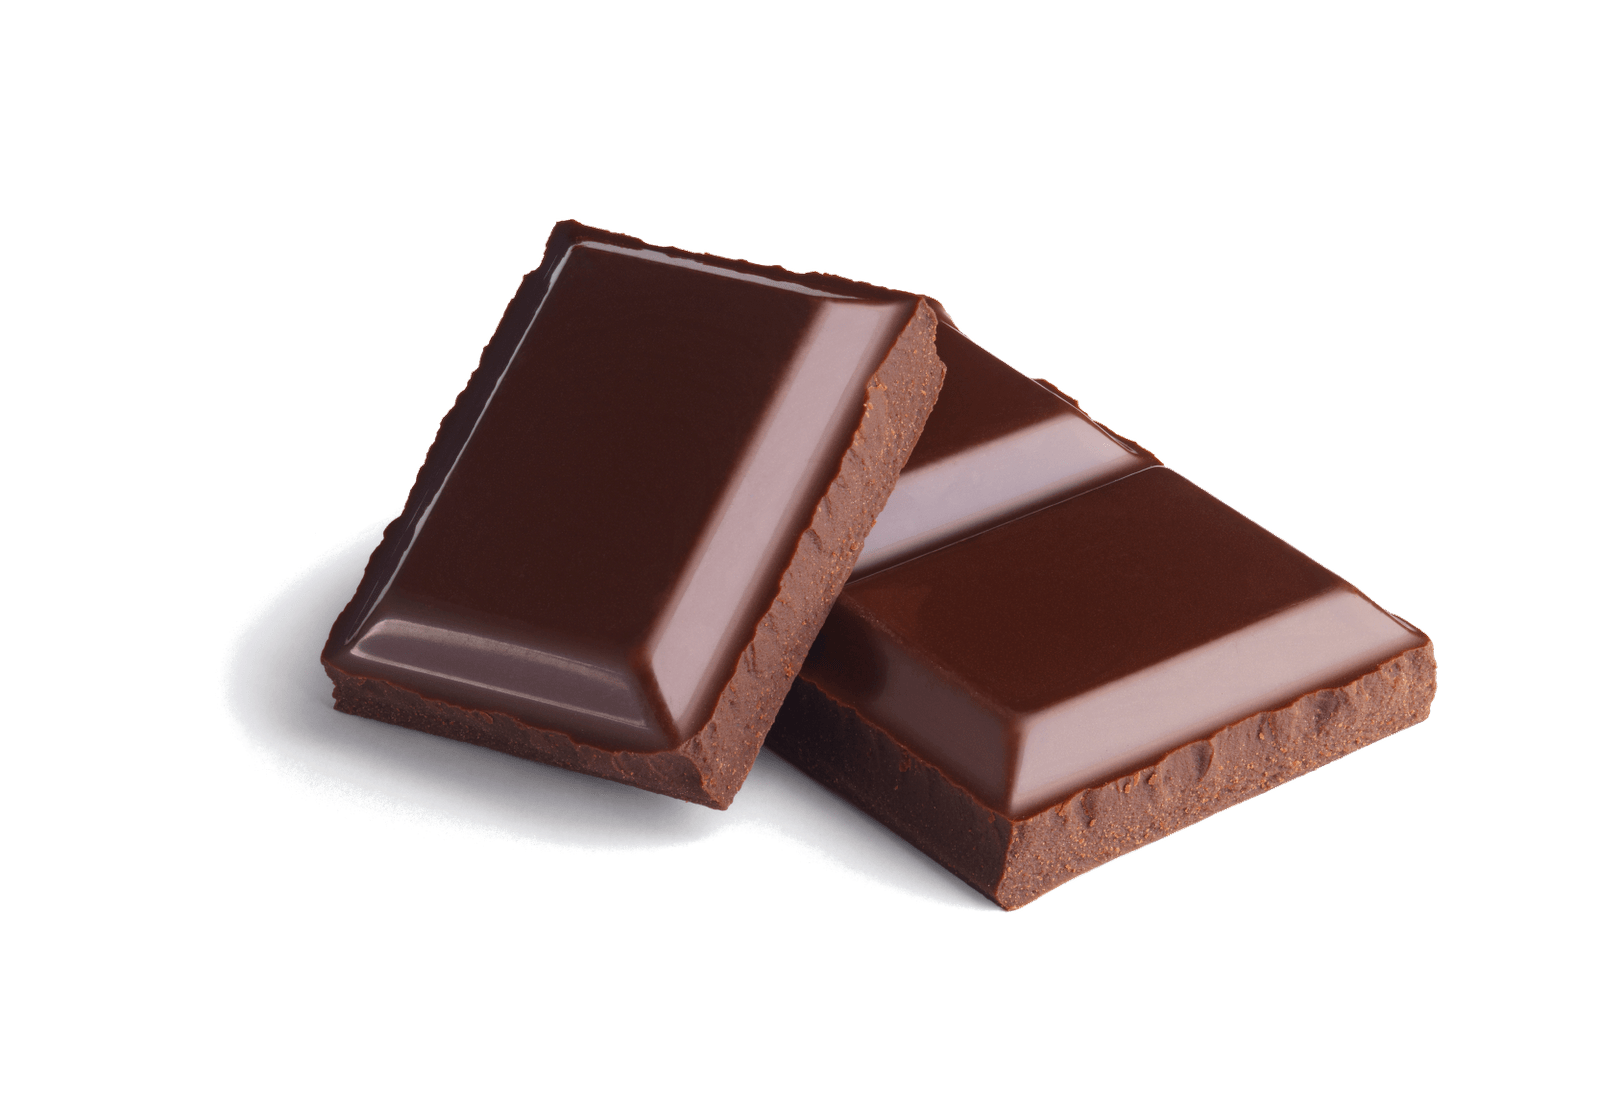 Chocolate Pieces transparent PNG.